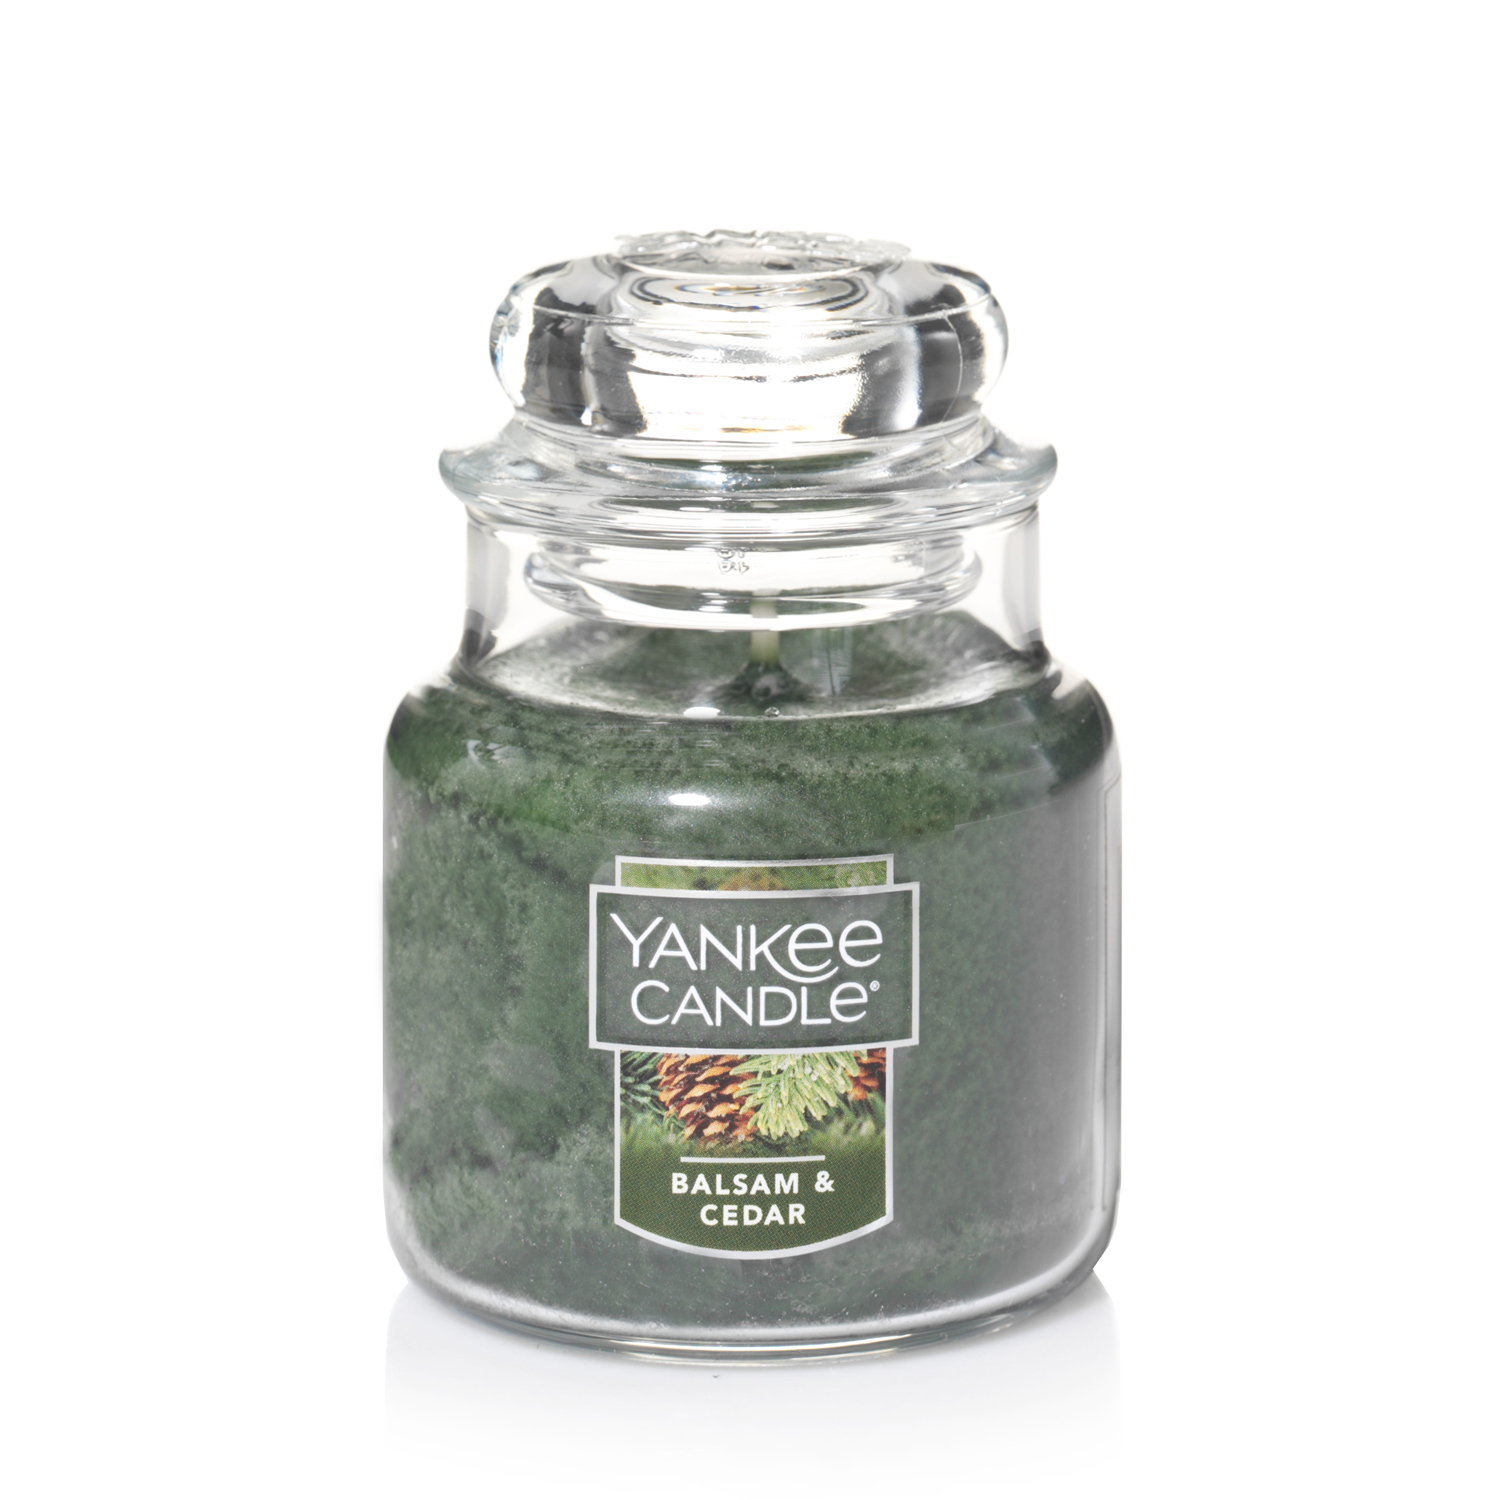 Yankee Candle Small Jar Candle, Balsam & Cedar